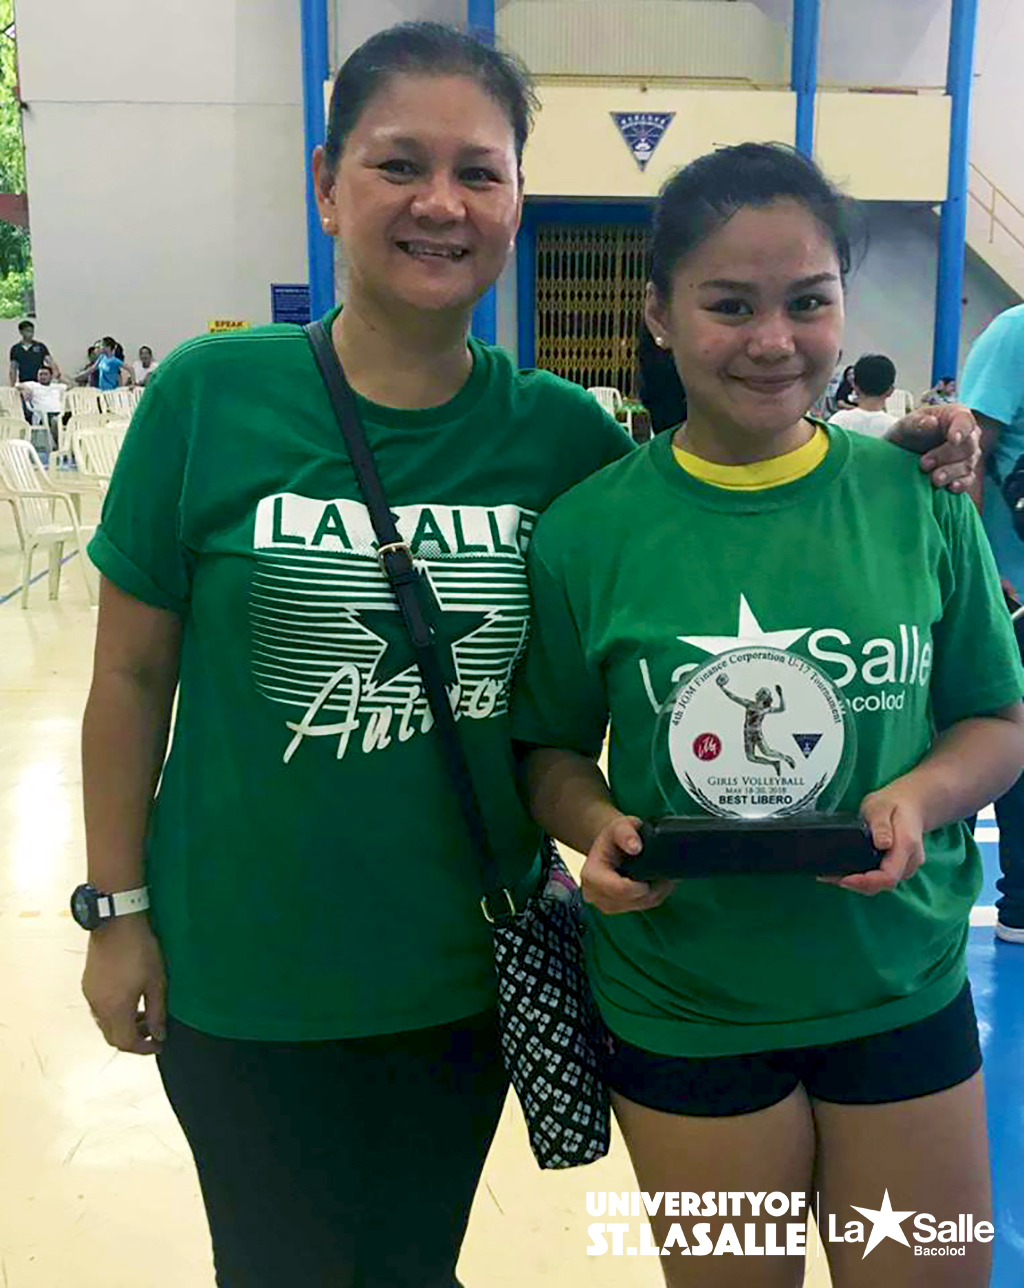 USLS-Varsity-Athlete-Best-Libero-during-the-4th-JGM-Invitational-Volleyball-Tournament.jpg